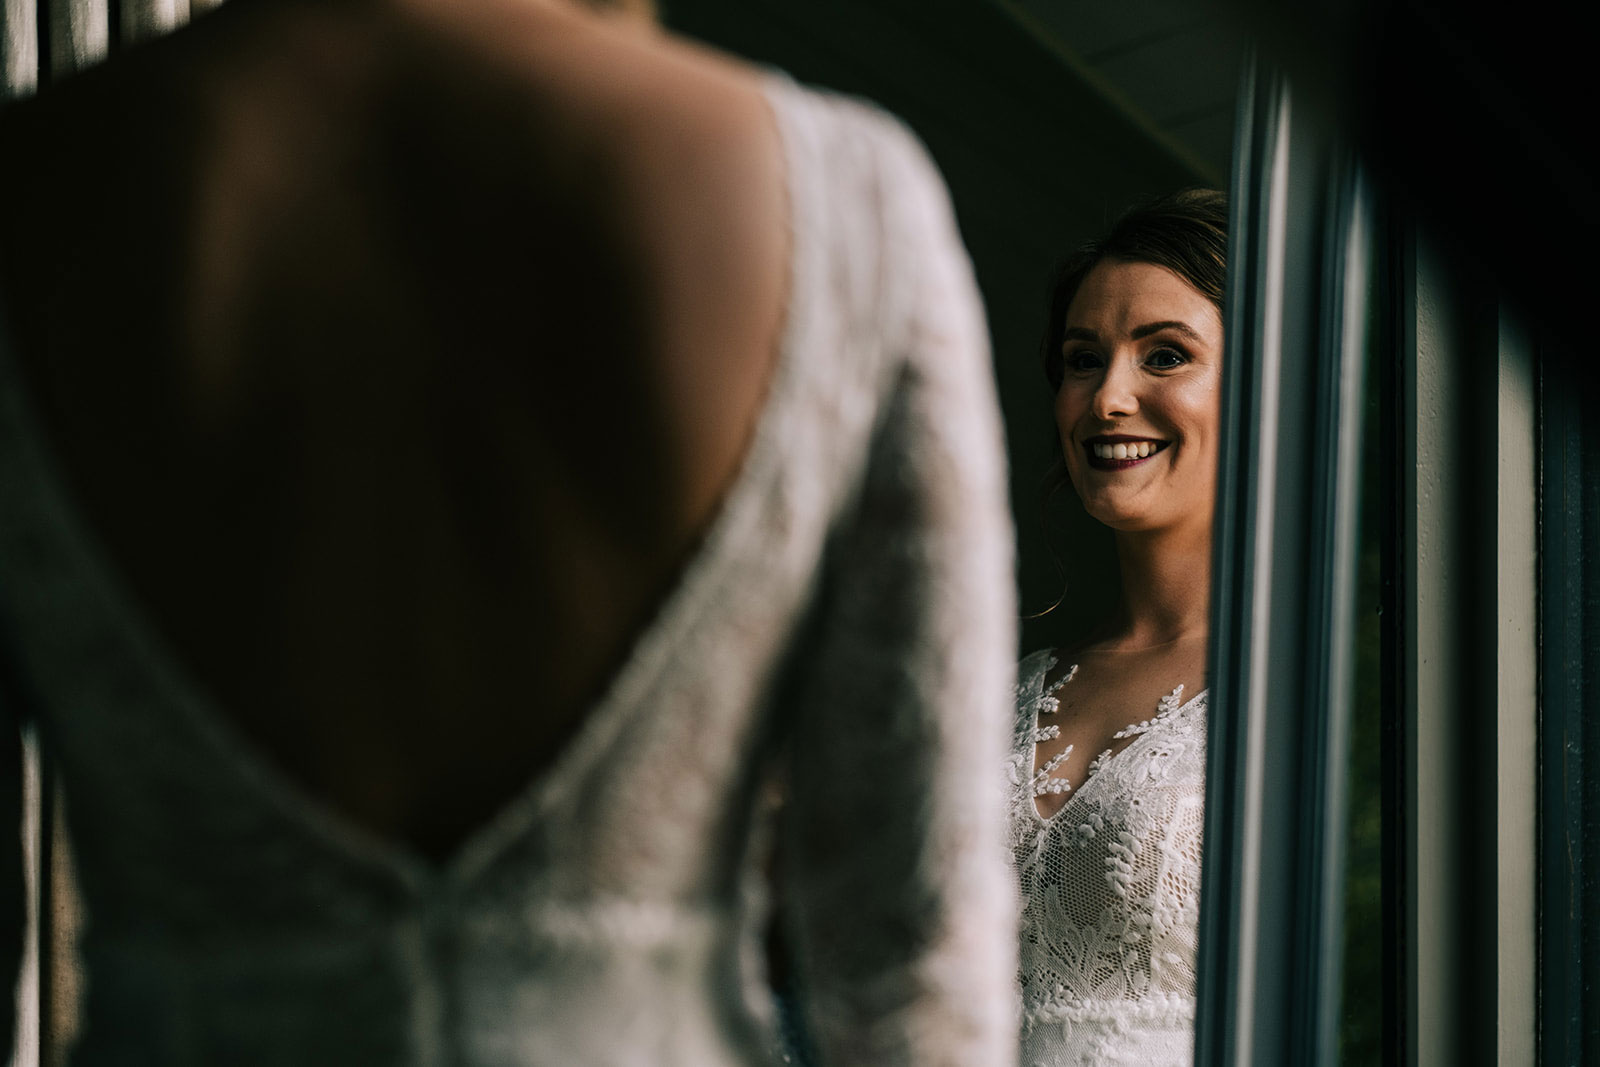 Louise looks into the mirror before the ceremony